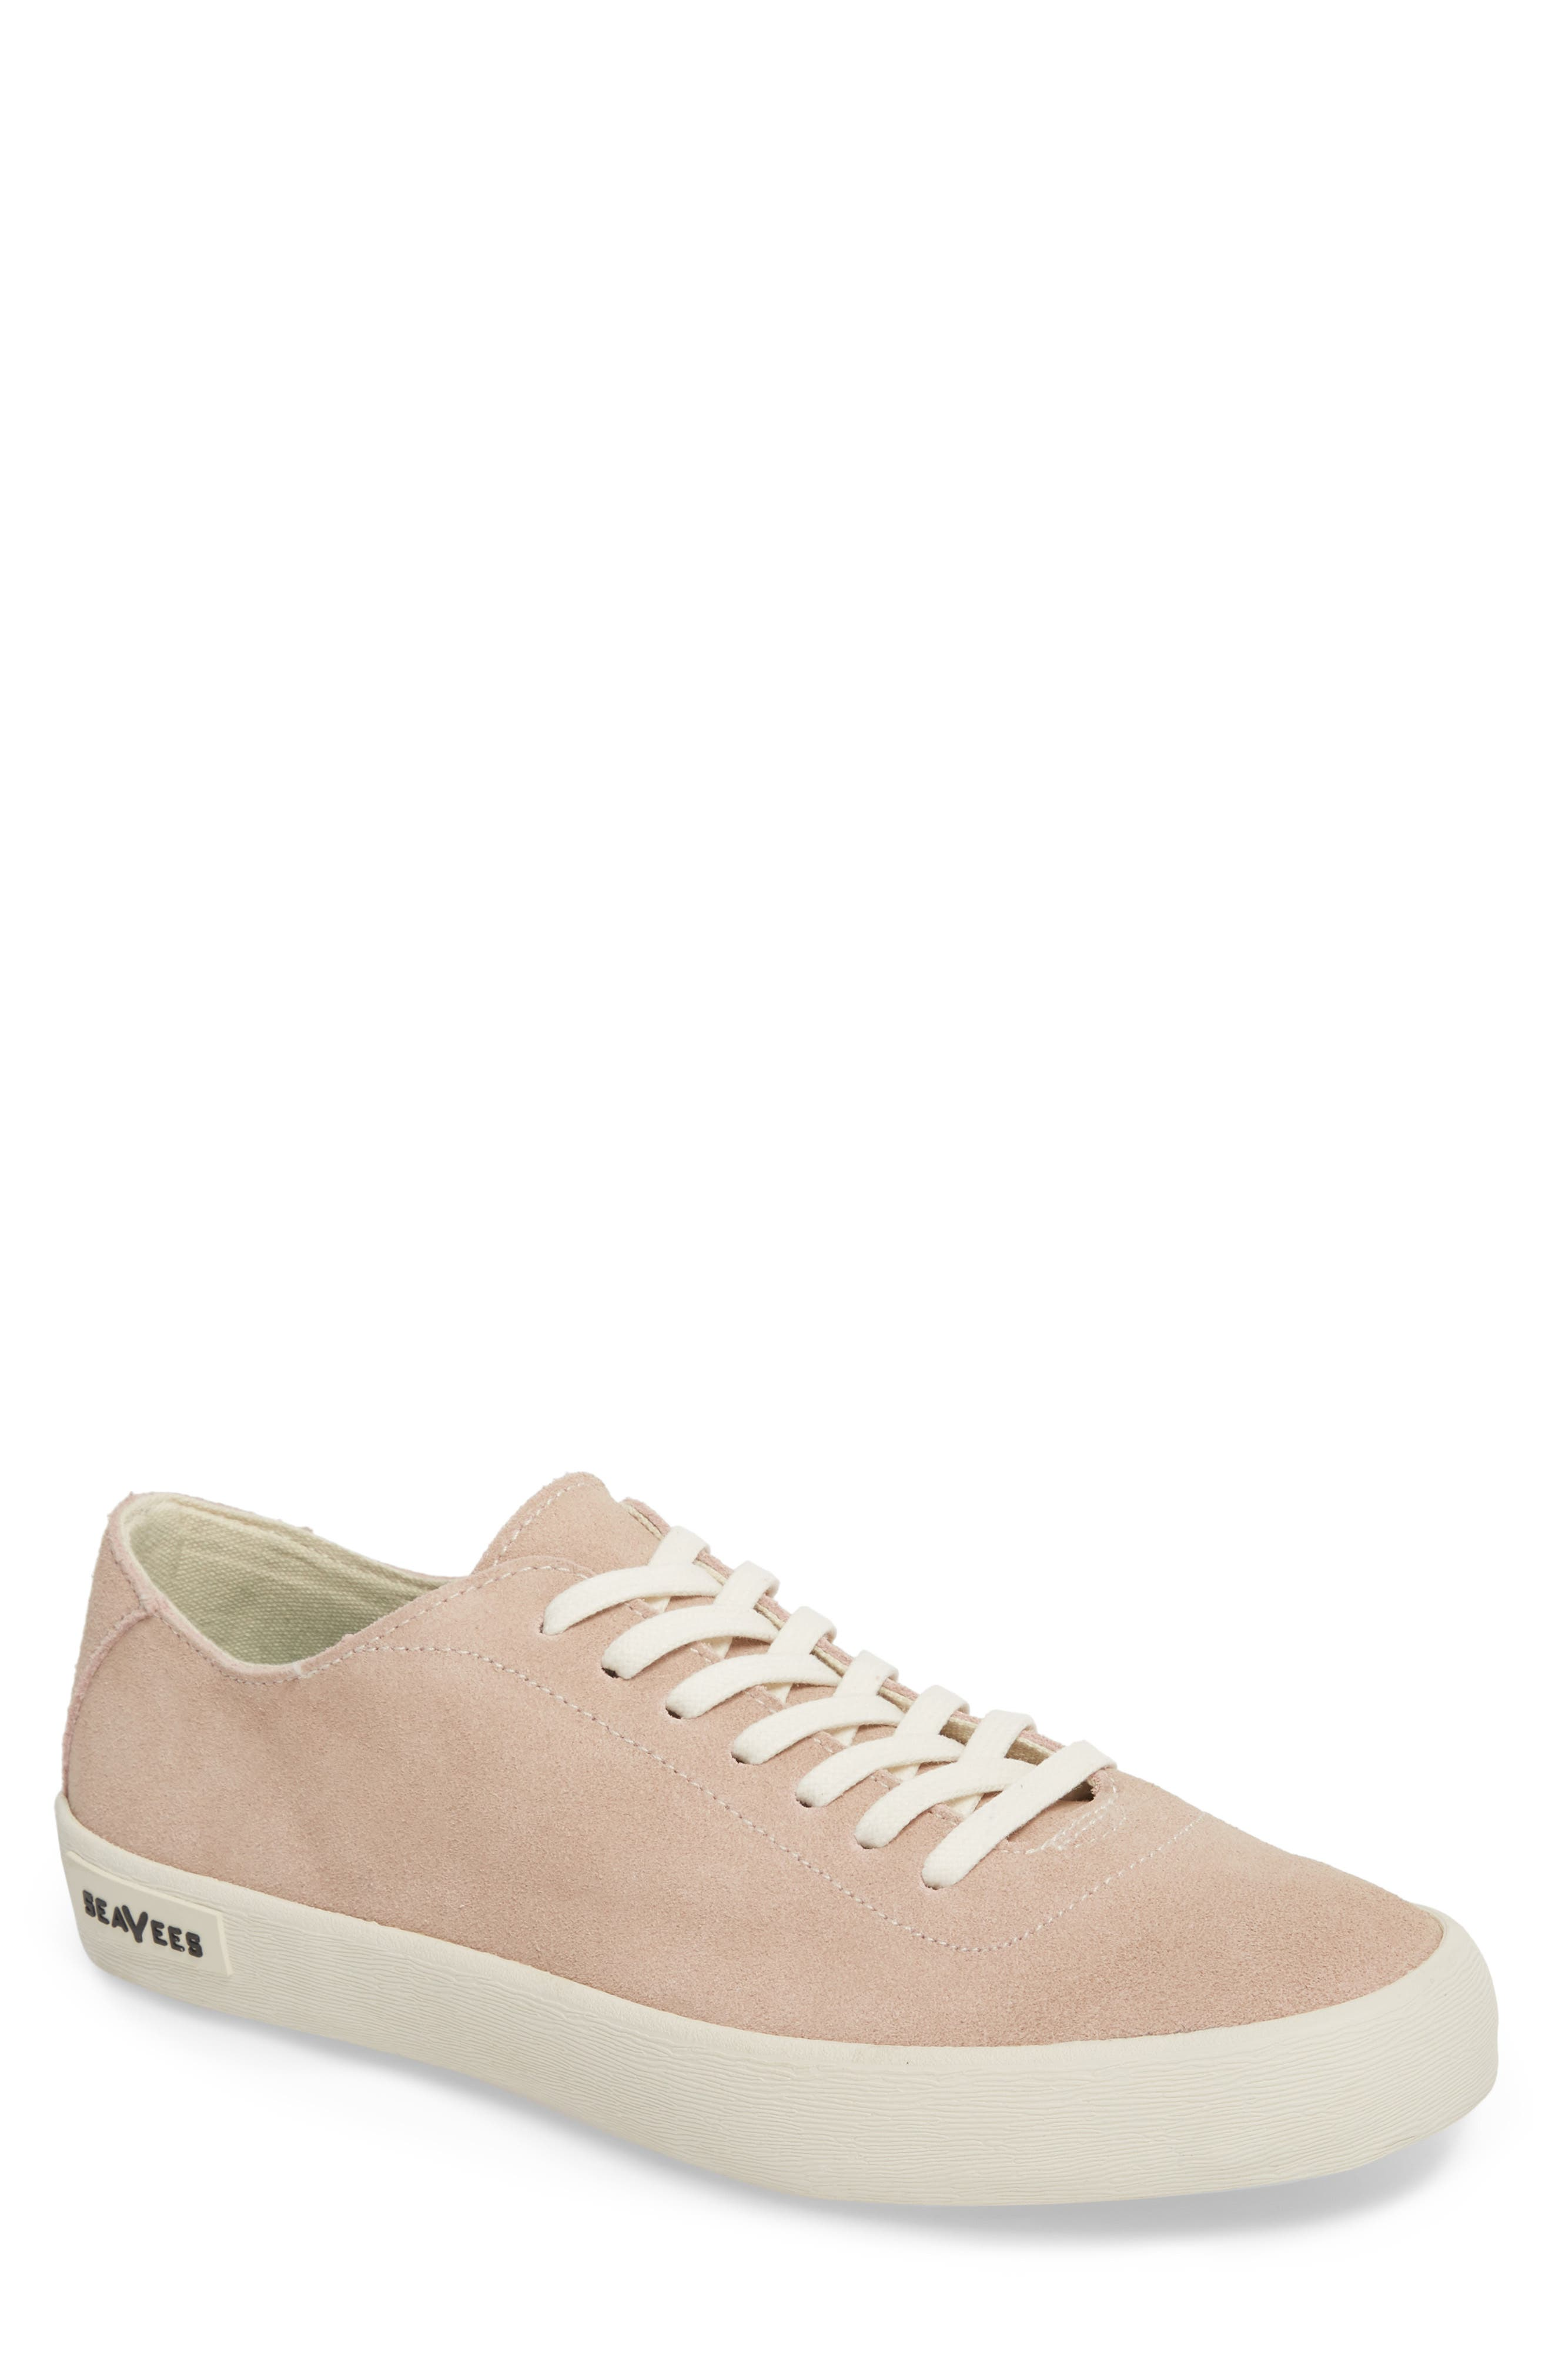 Racquet Club Sneaker,                             Main thumbnail 1, color,                             Rose Pink